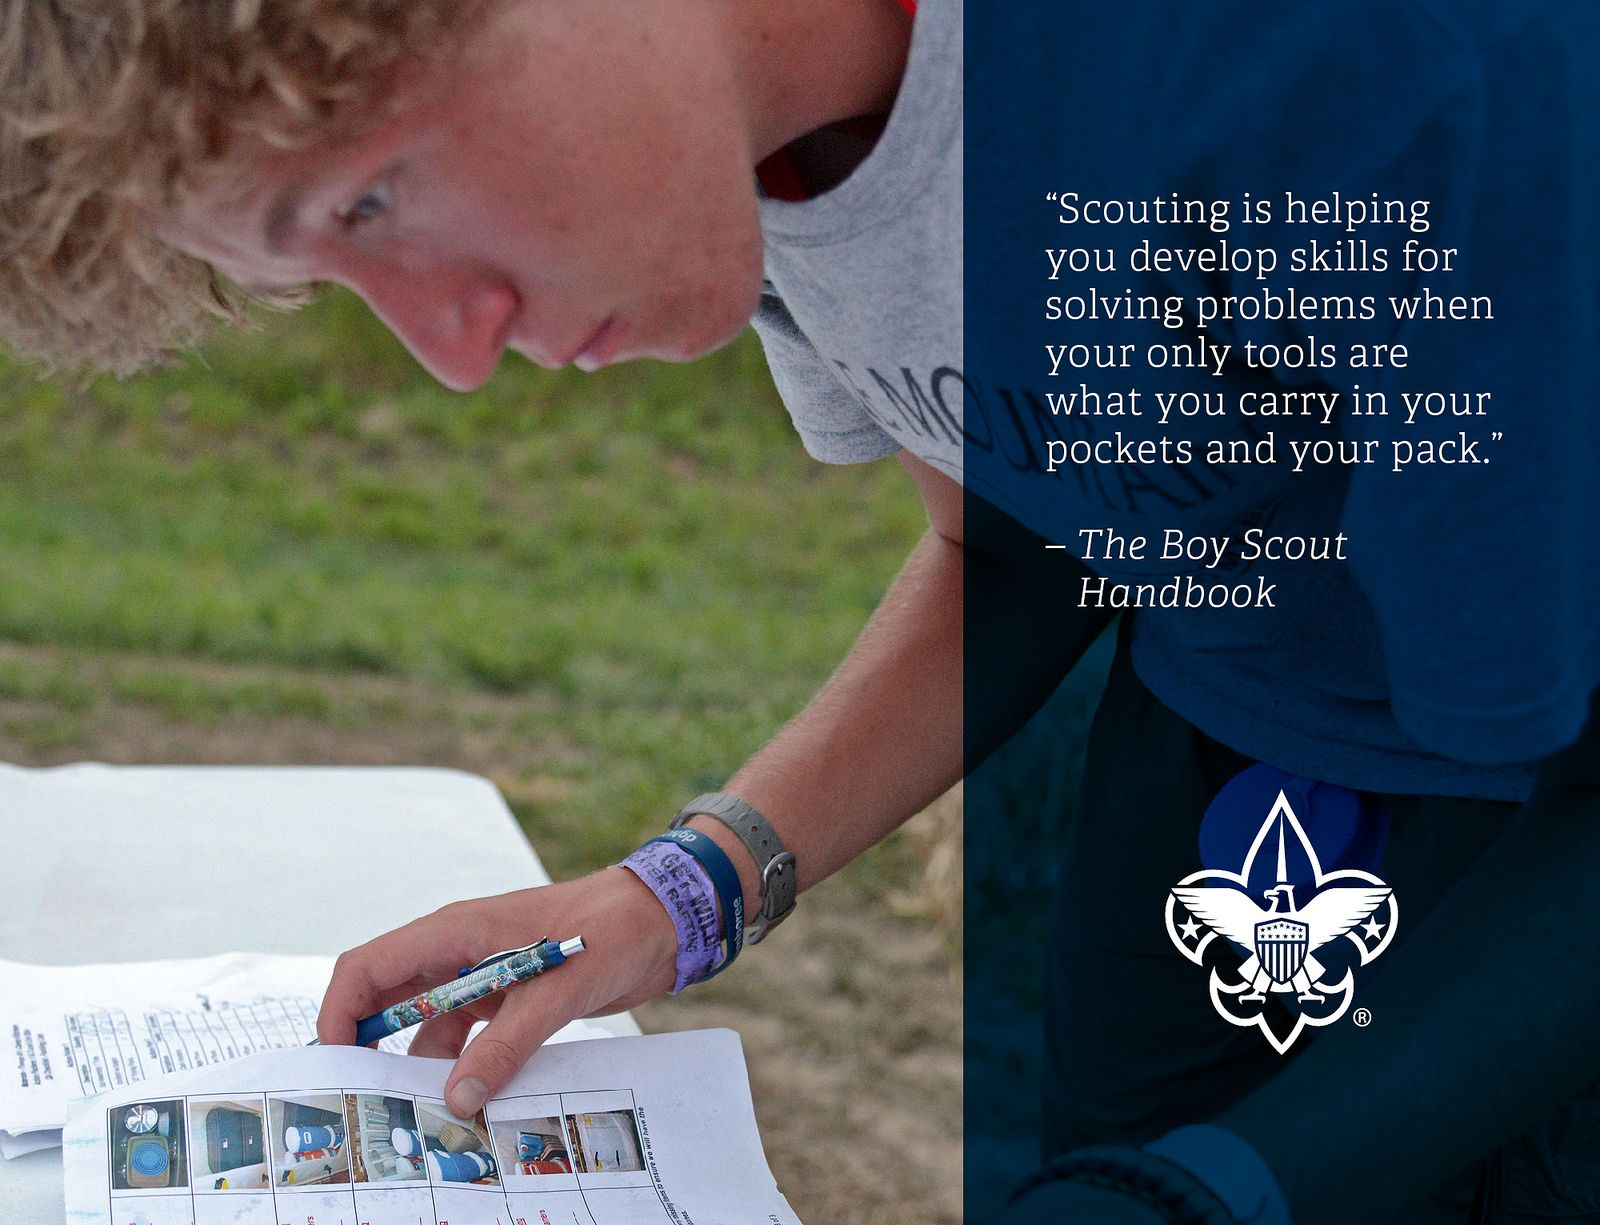 """Scouting is helping you develop skills for solving problems when your only tools are what you carry in your pockets and your pack."" - The Boy Scout Handbook"